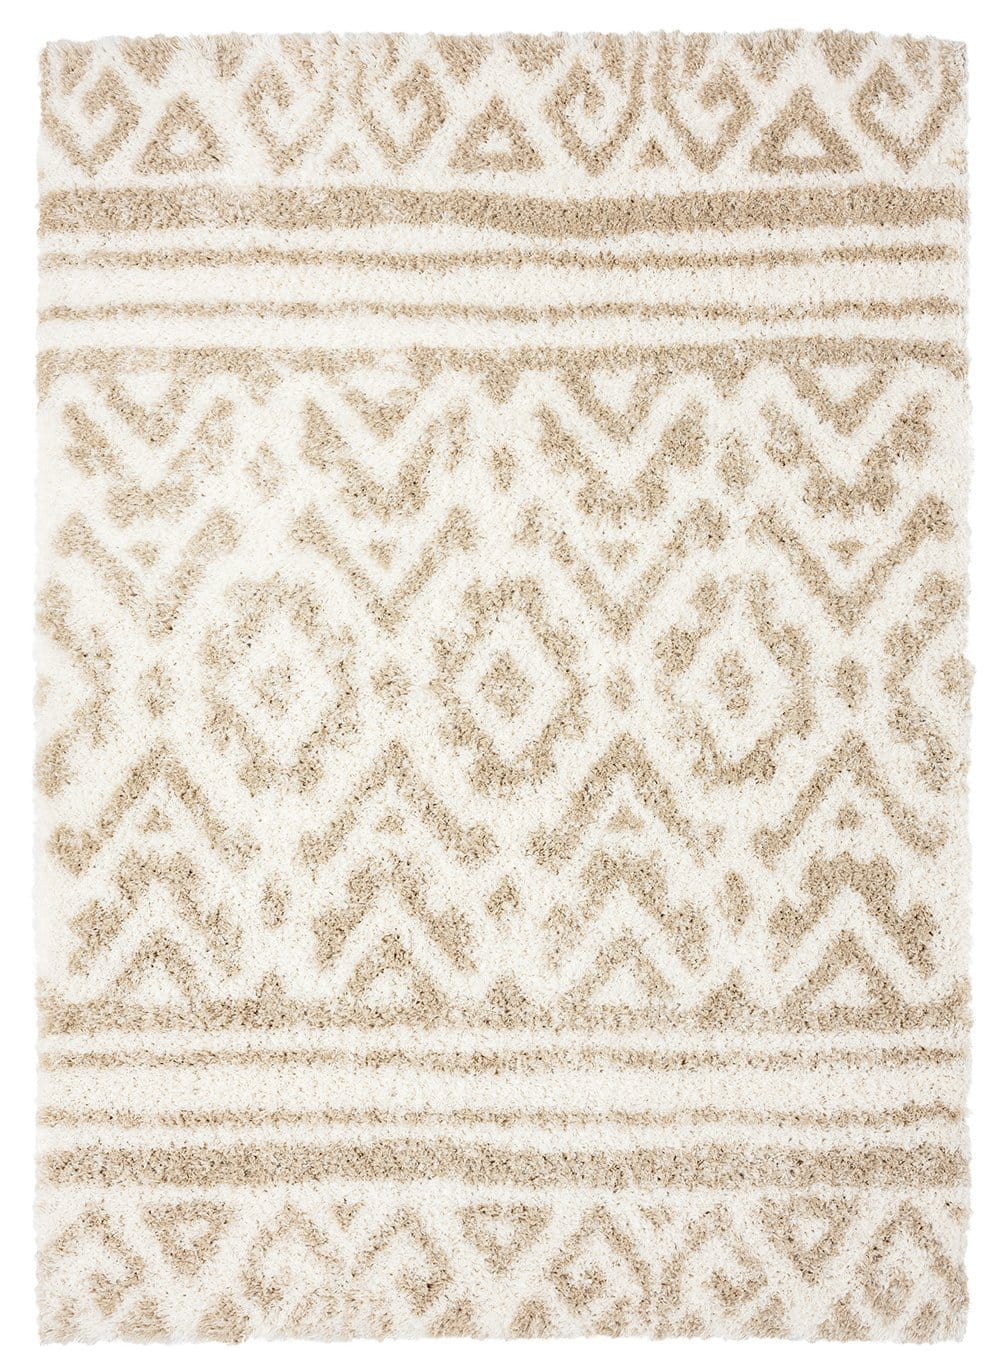 Arabella Ivory and Sand Beige Tribal Shag Rug